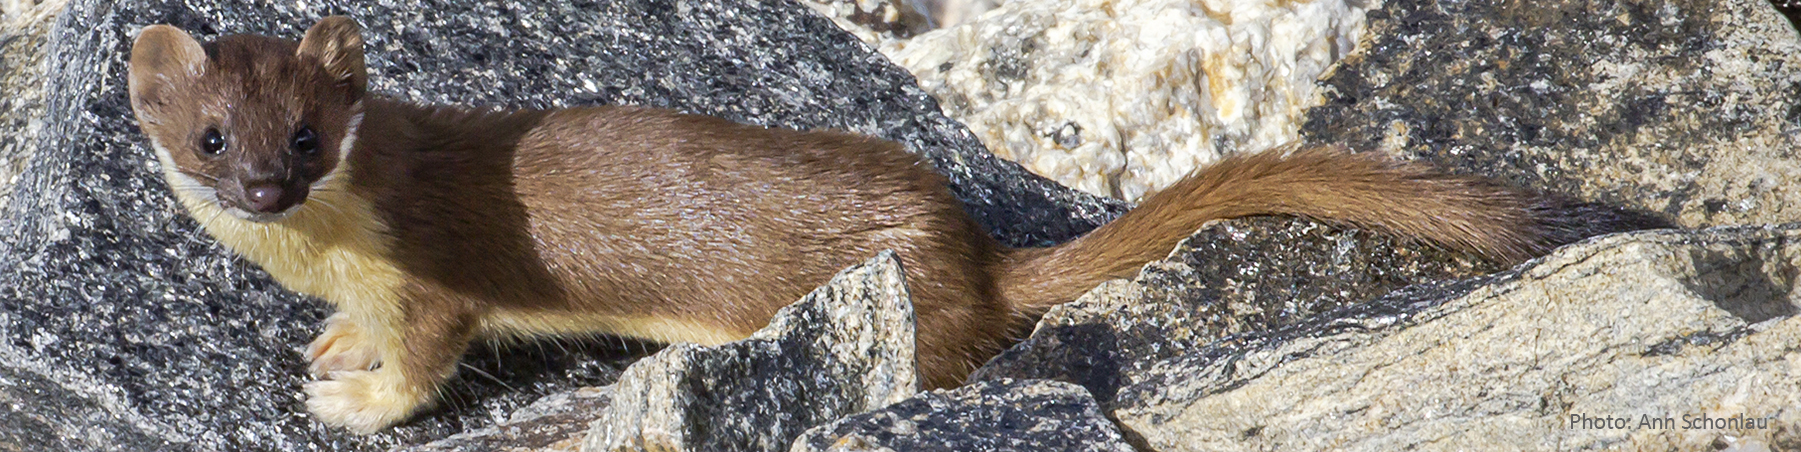 Long-tailed Weasel ASchonlau